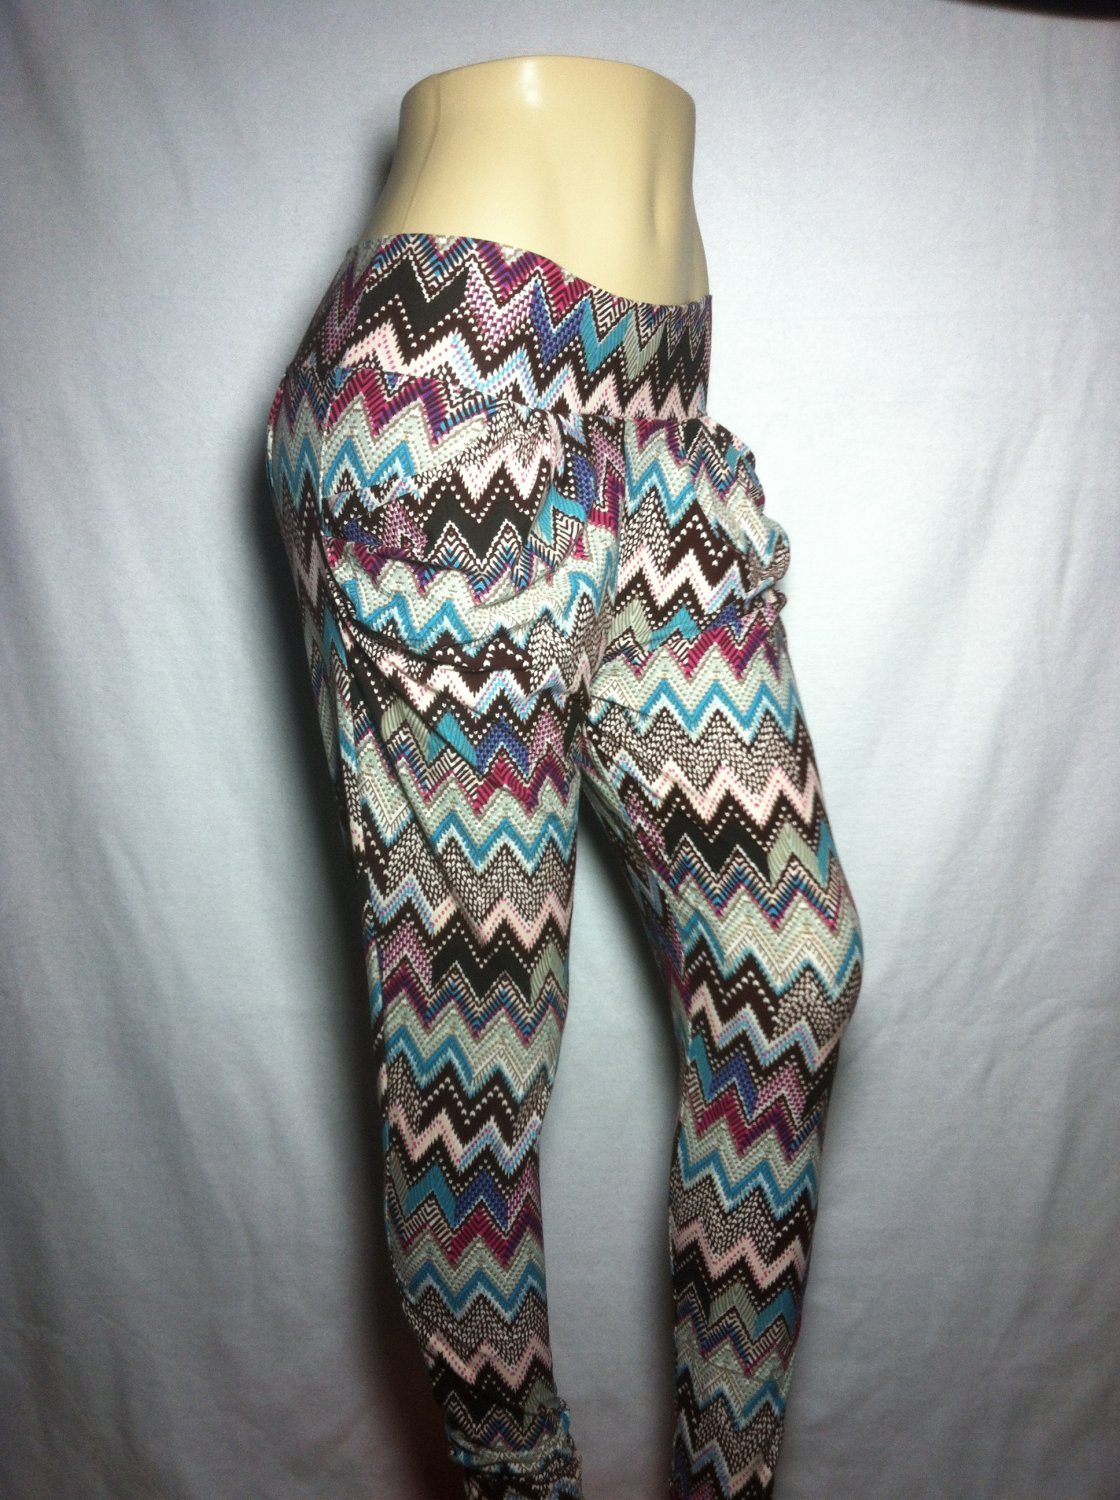 Tribal Chevron Print Jogger Leggings - by Cali West Boutique